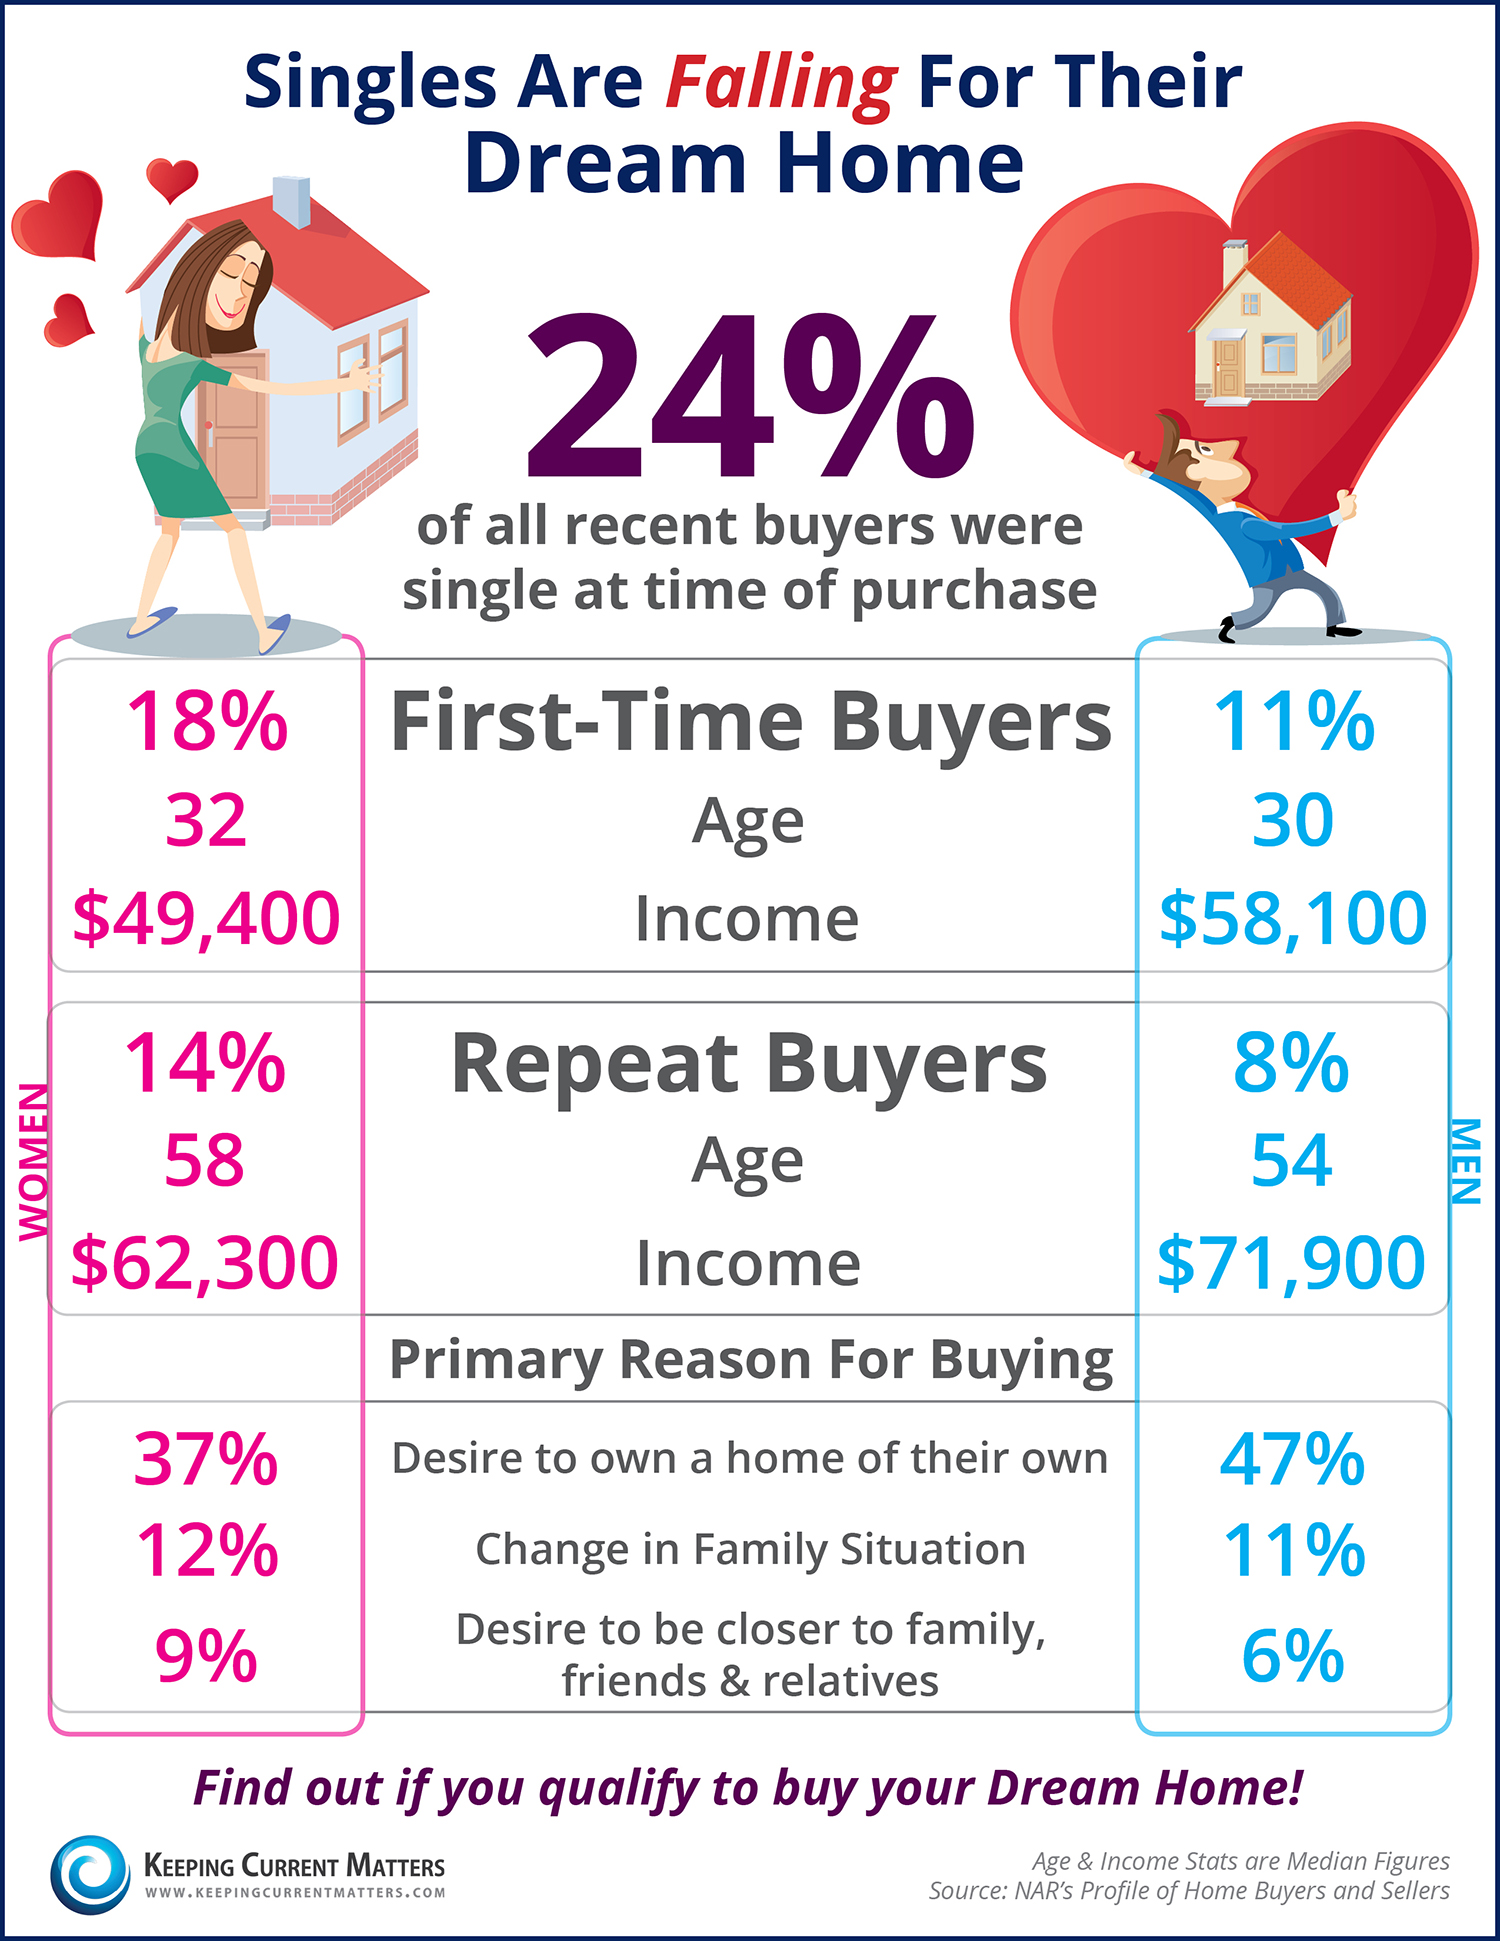 Singles Are Falling For Their Dream Home | Keeping Current Matters